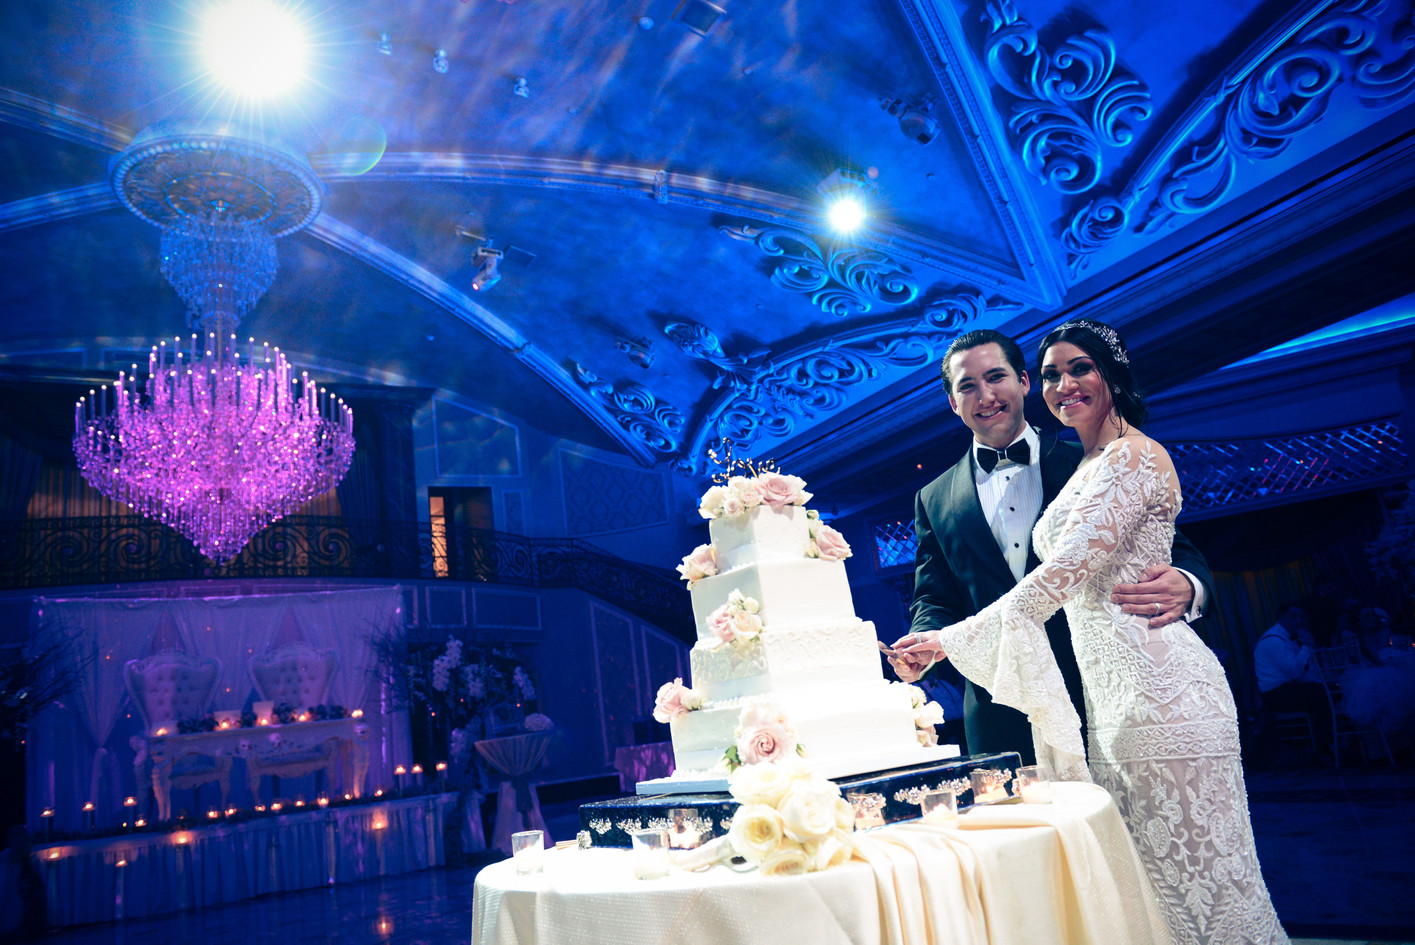 #NJwedding photo at The Venetian in Garfield, NJ by Abella Studios